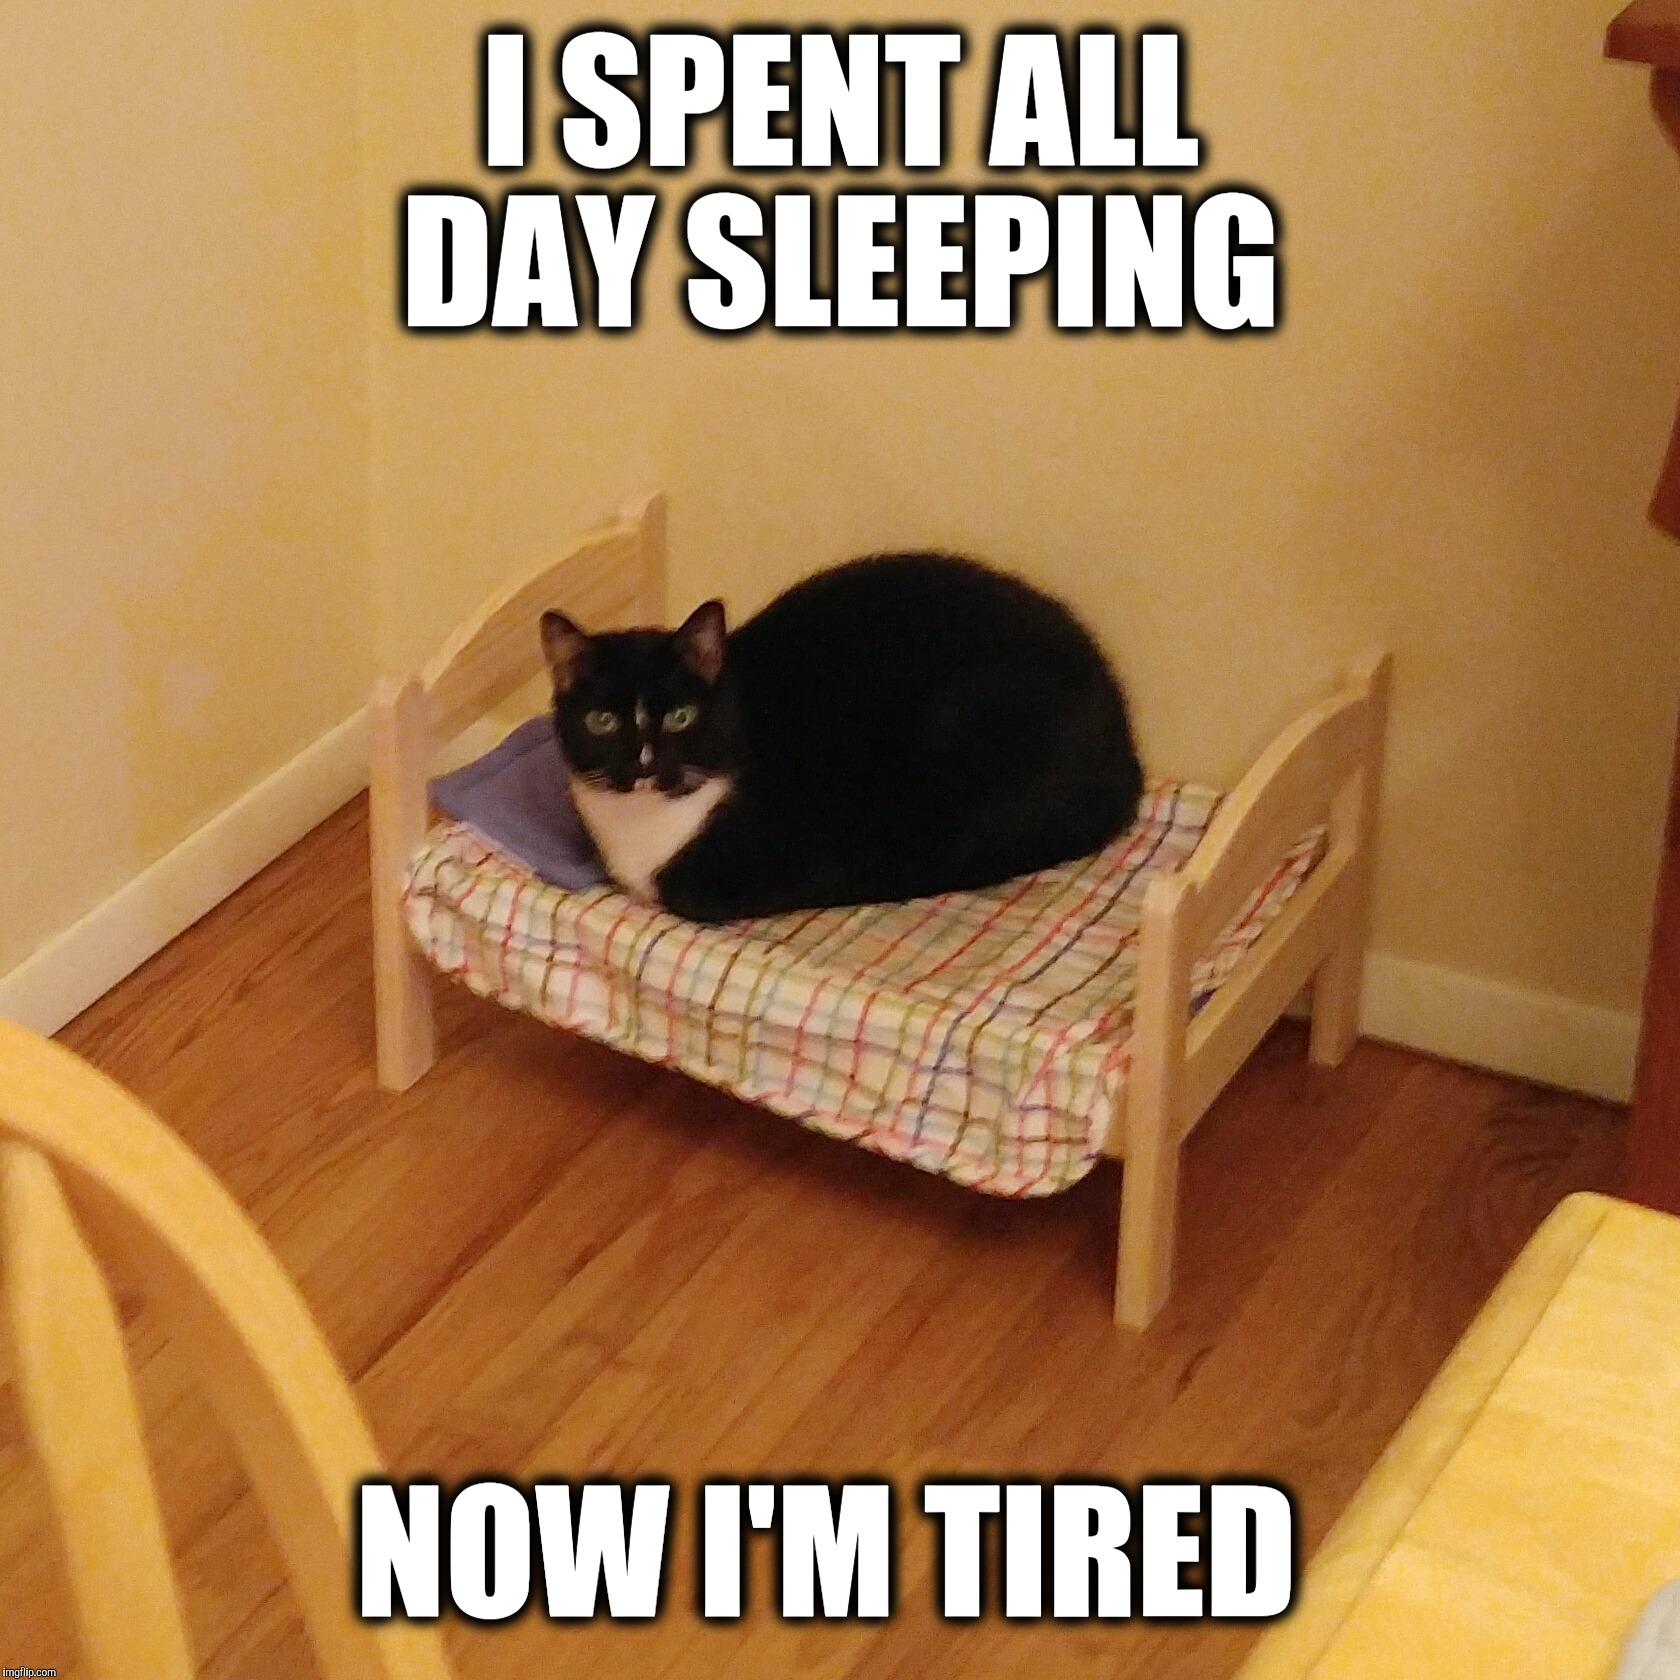 Sleepy cat  | I SPENT ALL DAY SLEEPING NOW I'M TIRED | image tagged in bert the cat,sleepy cat,bed,sleepy,funny cat memes,funny memes | made w/ Imgflip meme maker